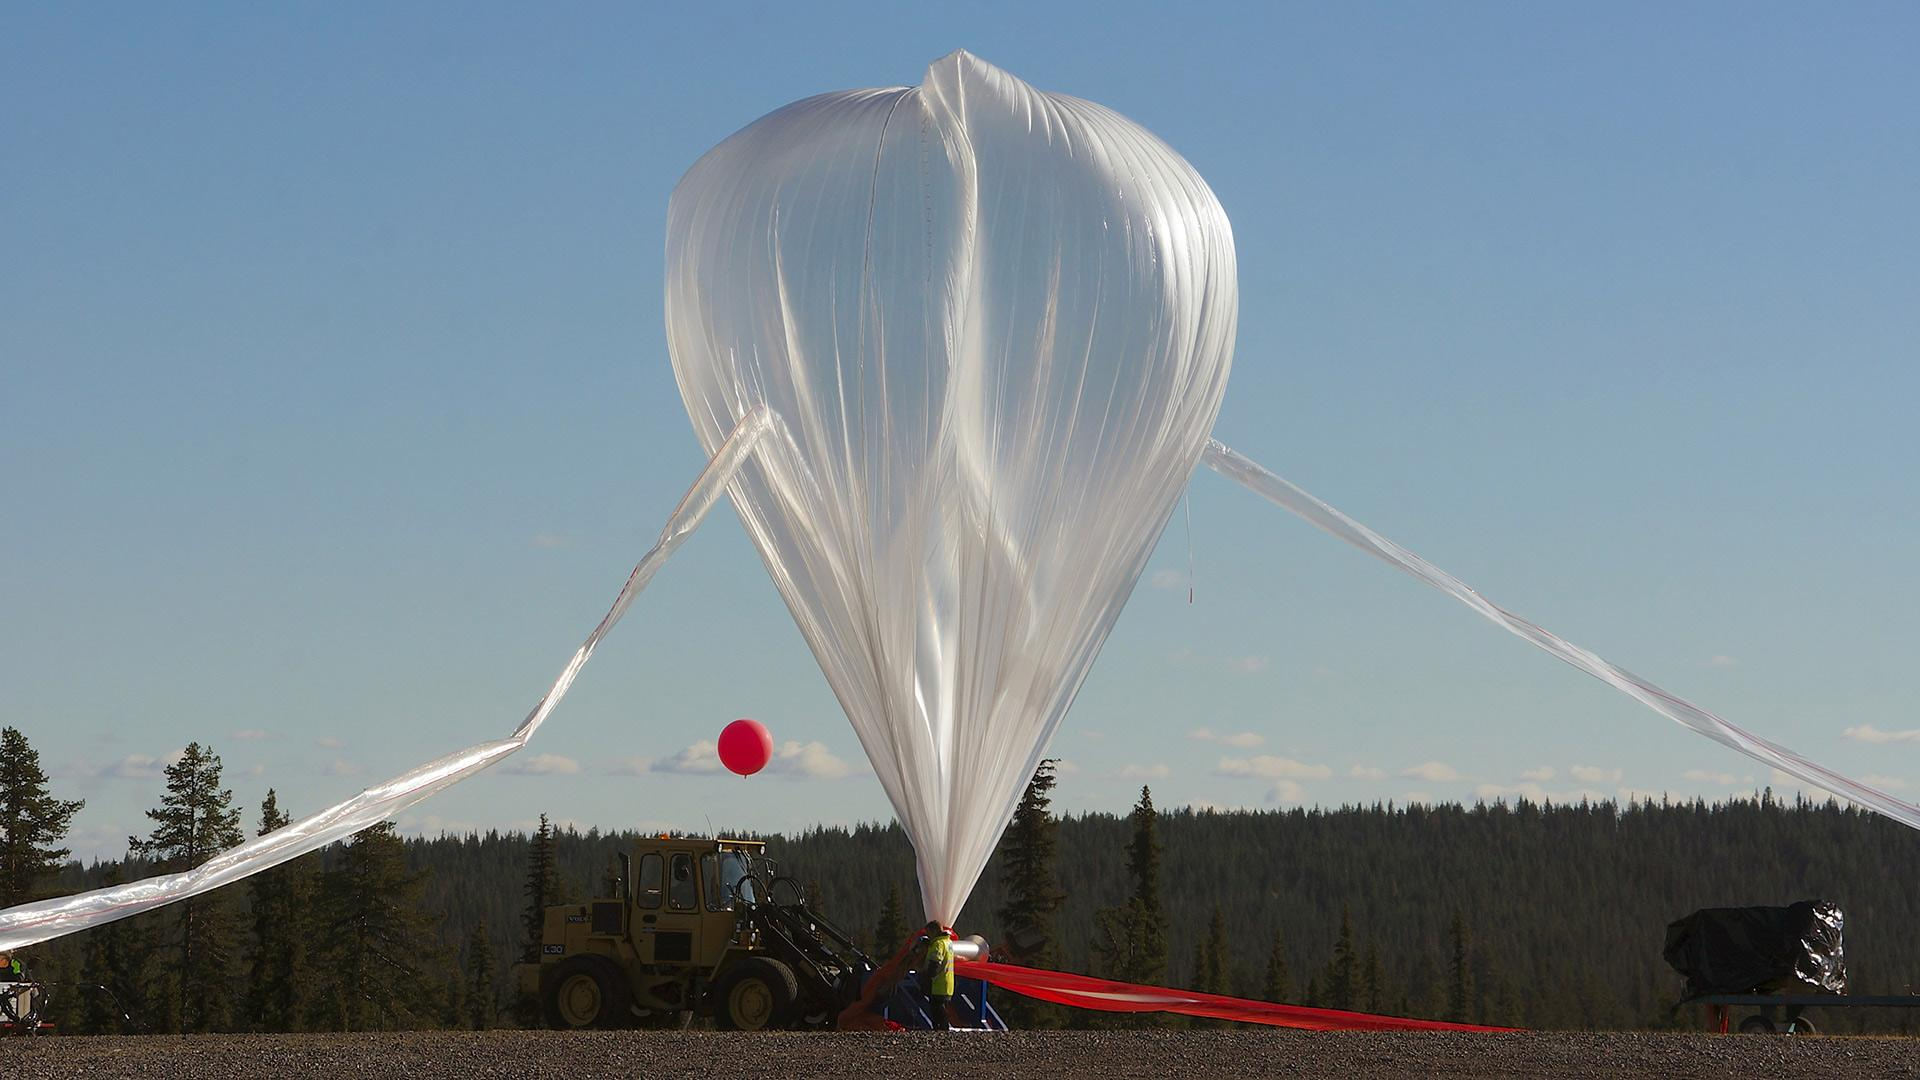 Research balloon BEXUS prepared for launch